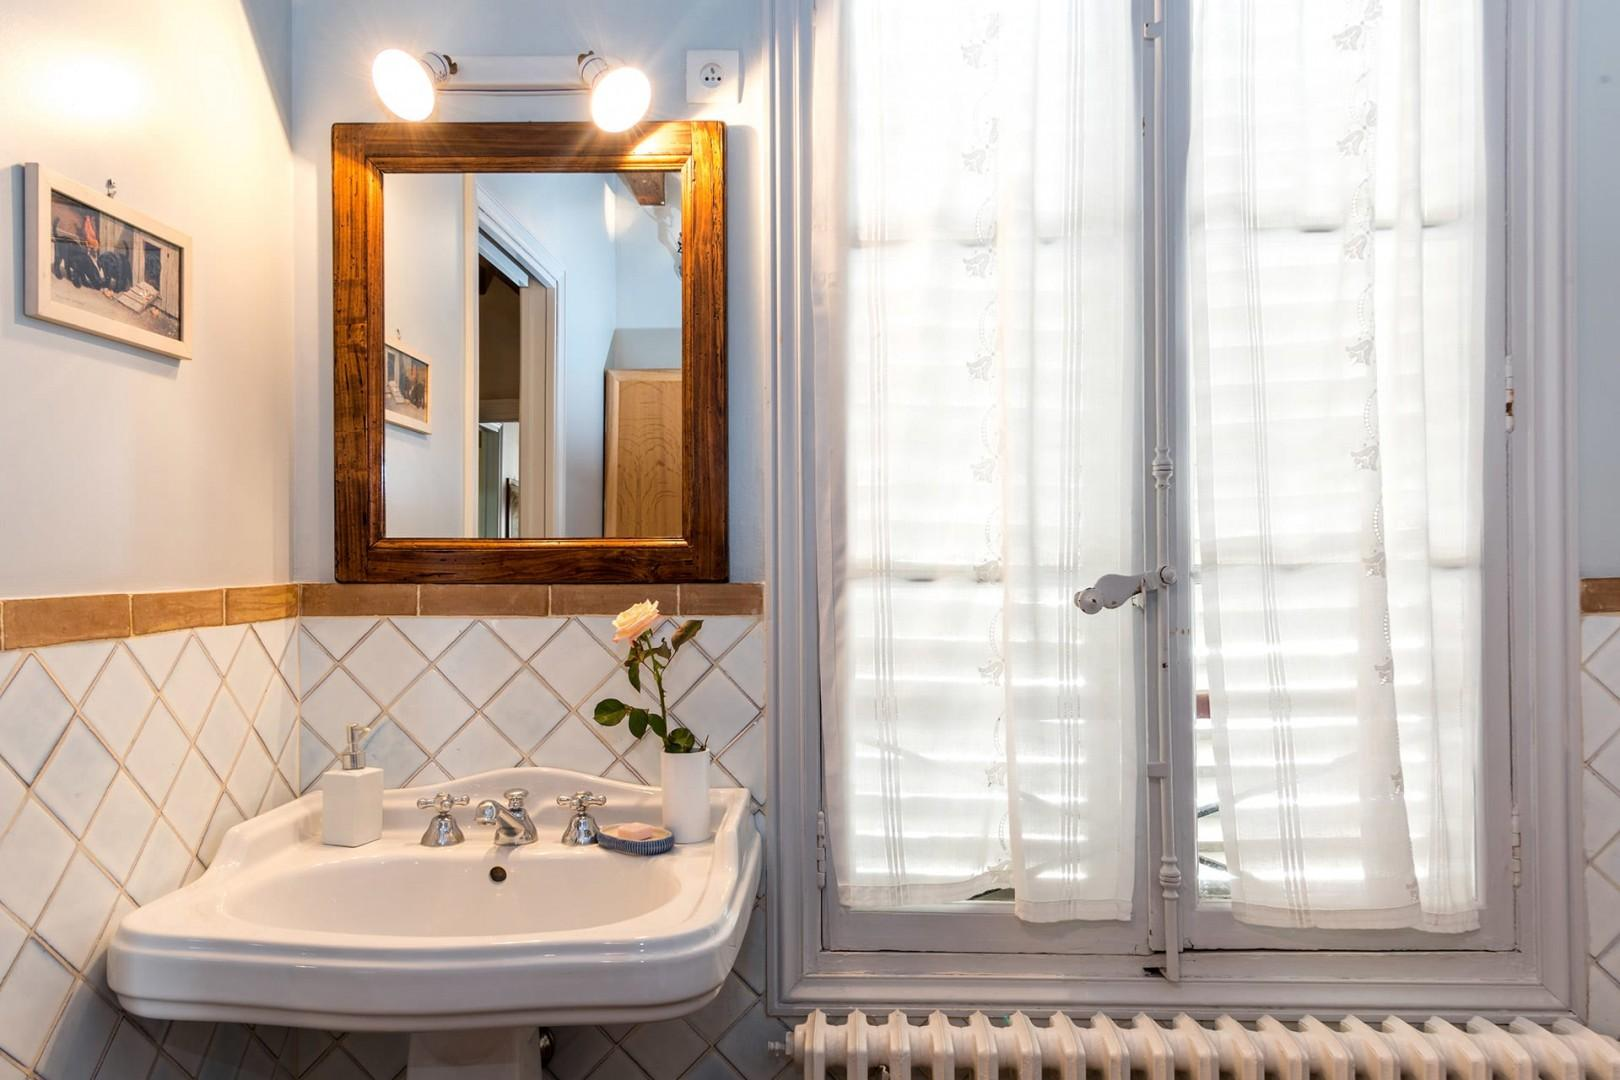 A large window fills the bathroom with great light.